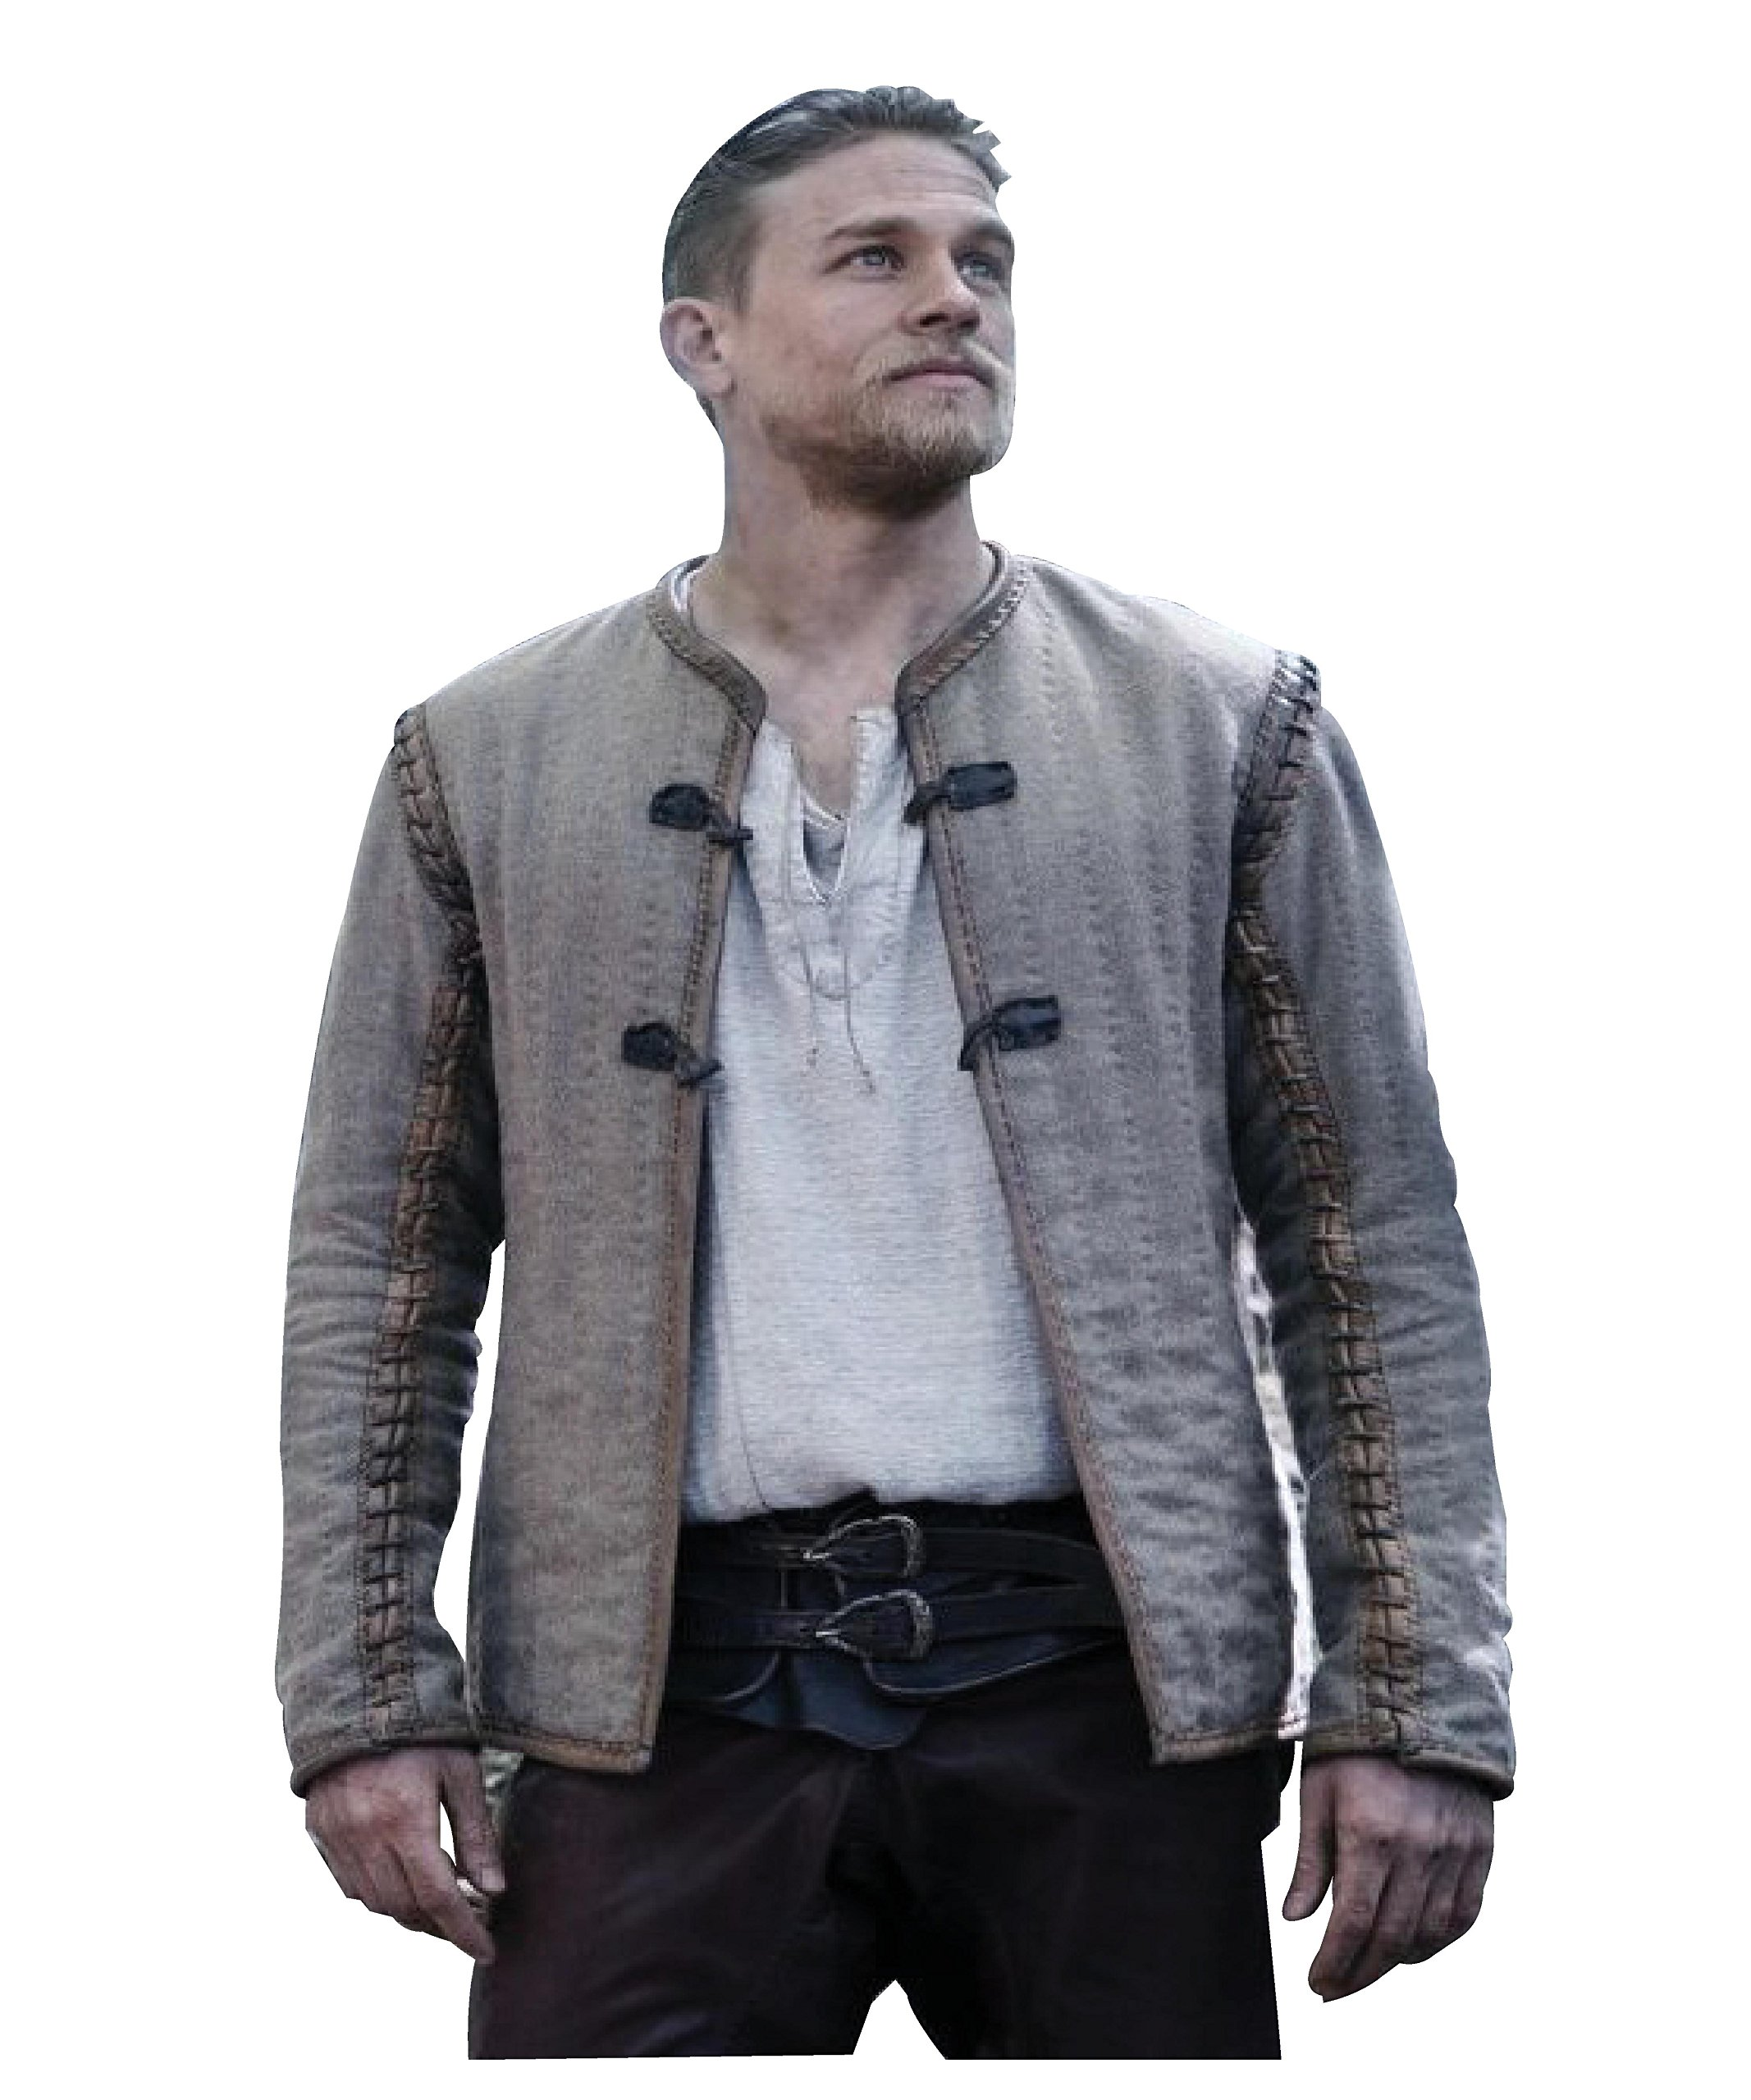 King Arthur Legends Of The Sword Movie Dress Brown Cotton Jacket For Mens L by Class Jackets (Image #1)